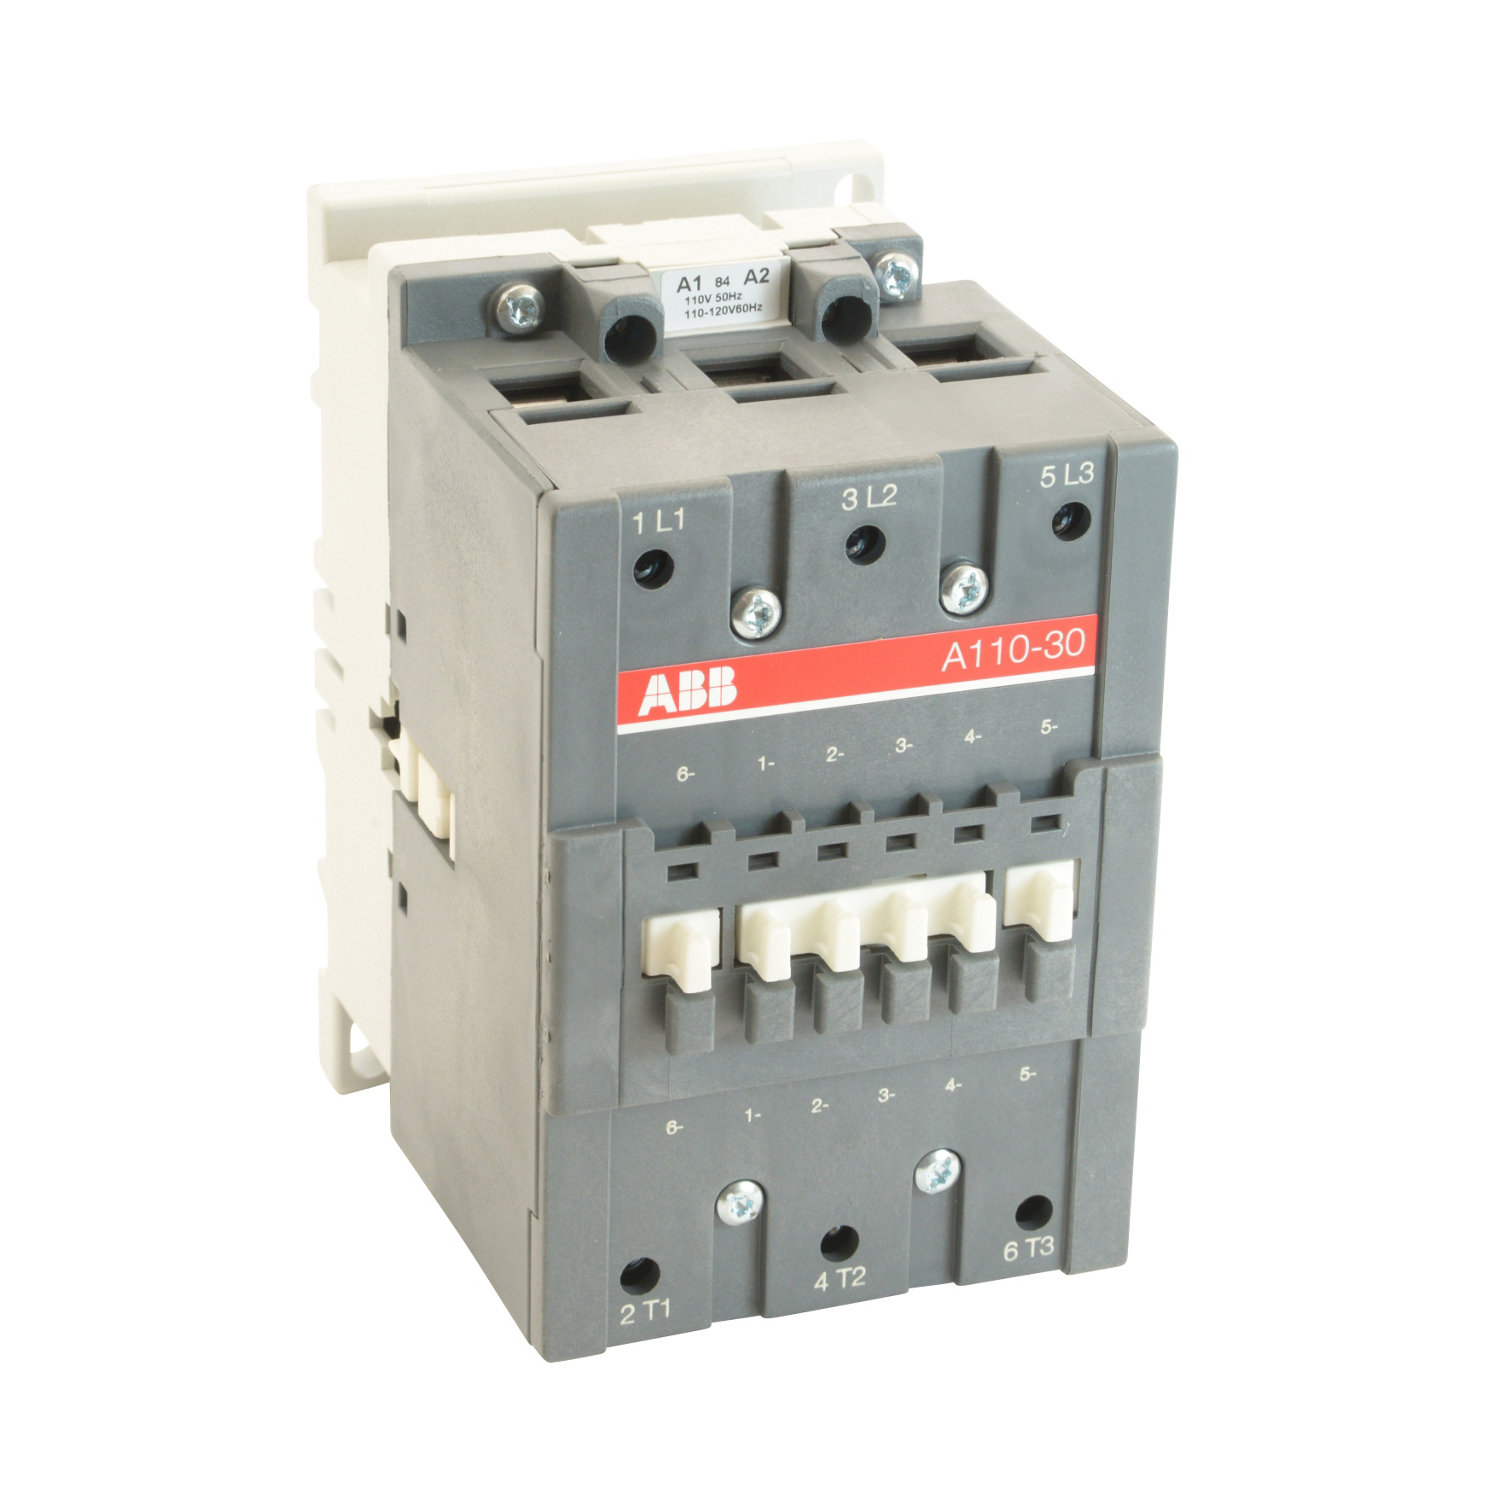 3 pole, 160 amp, non-reversing across the line contactor with 110-